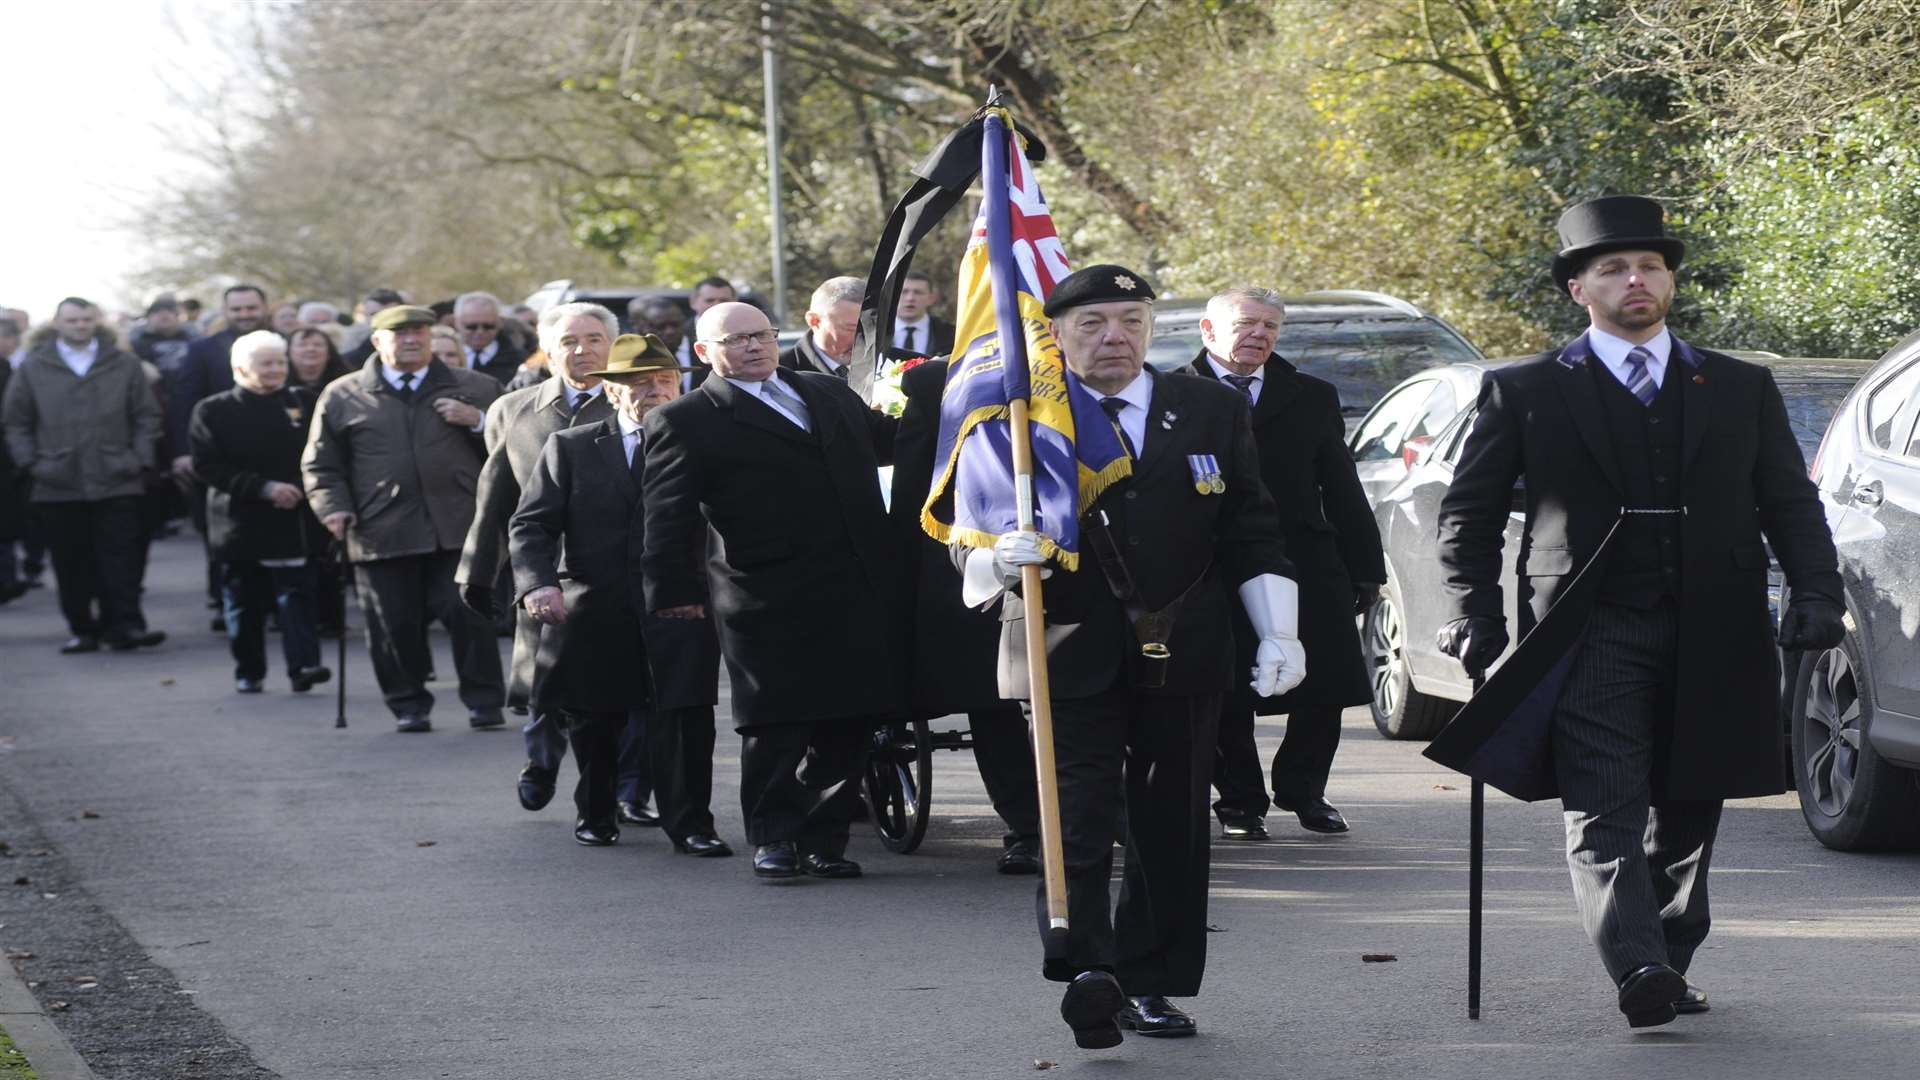 Funeral of 96 year old Dunkirk veteran Eric Rooke Procession from the Red Lion to St Paul's Church.